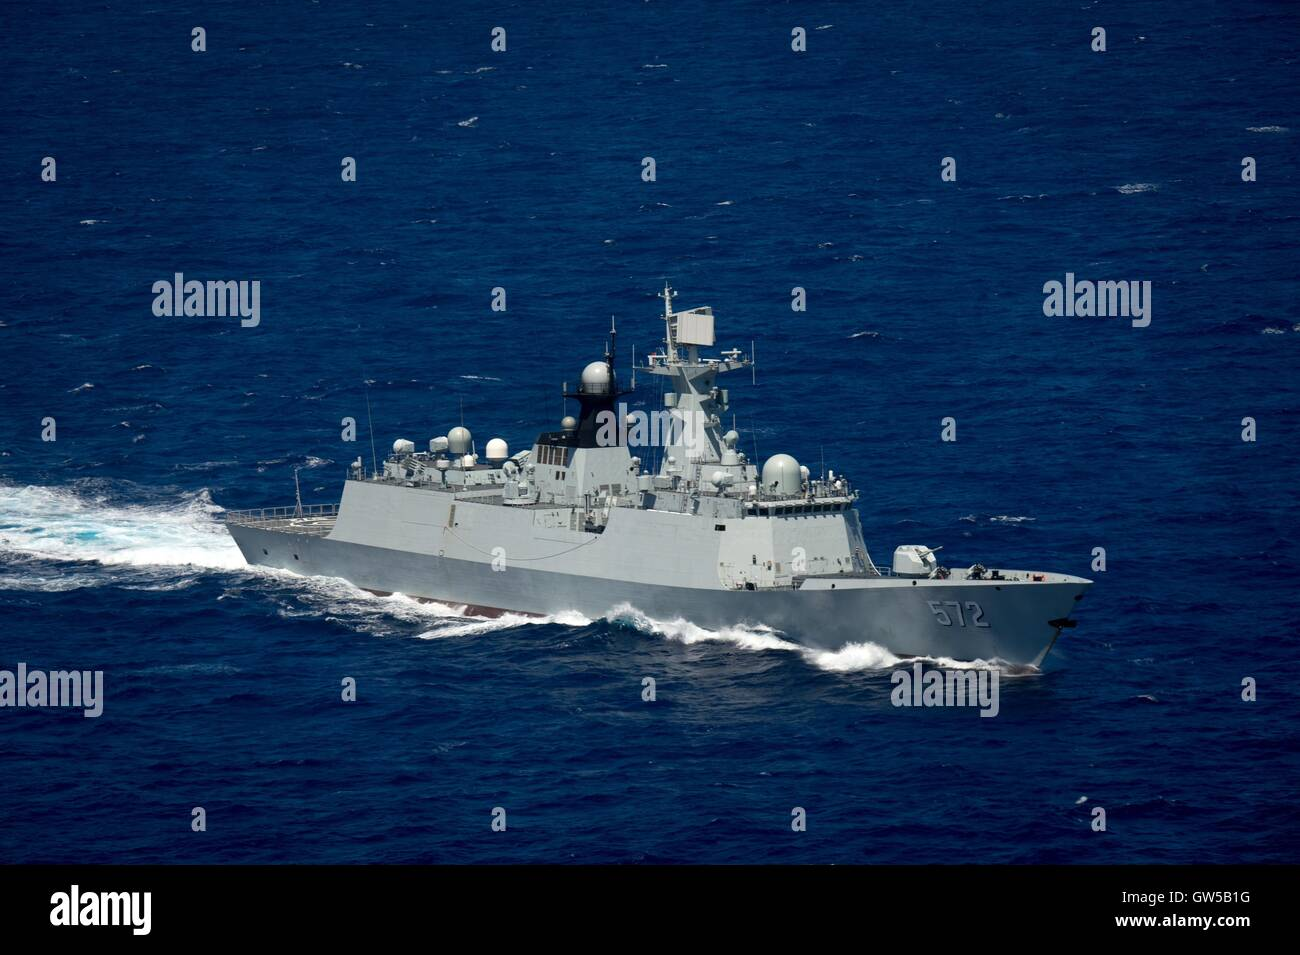 Chinese Navy multi-role frigate Hengshui steams in close formation during the Rim of the Pacific exercise June 22, - Stock Image